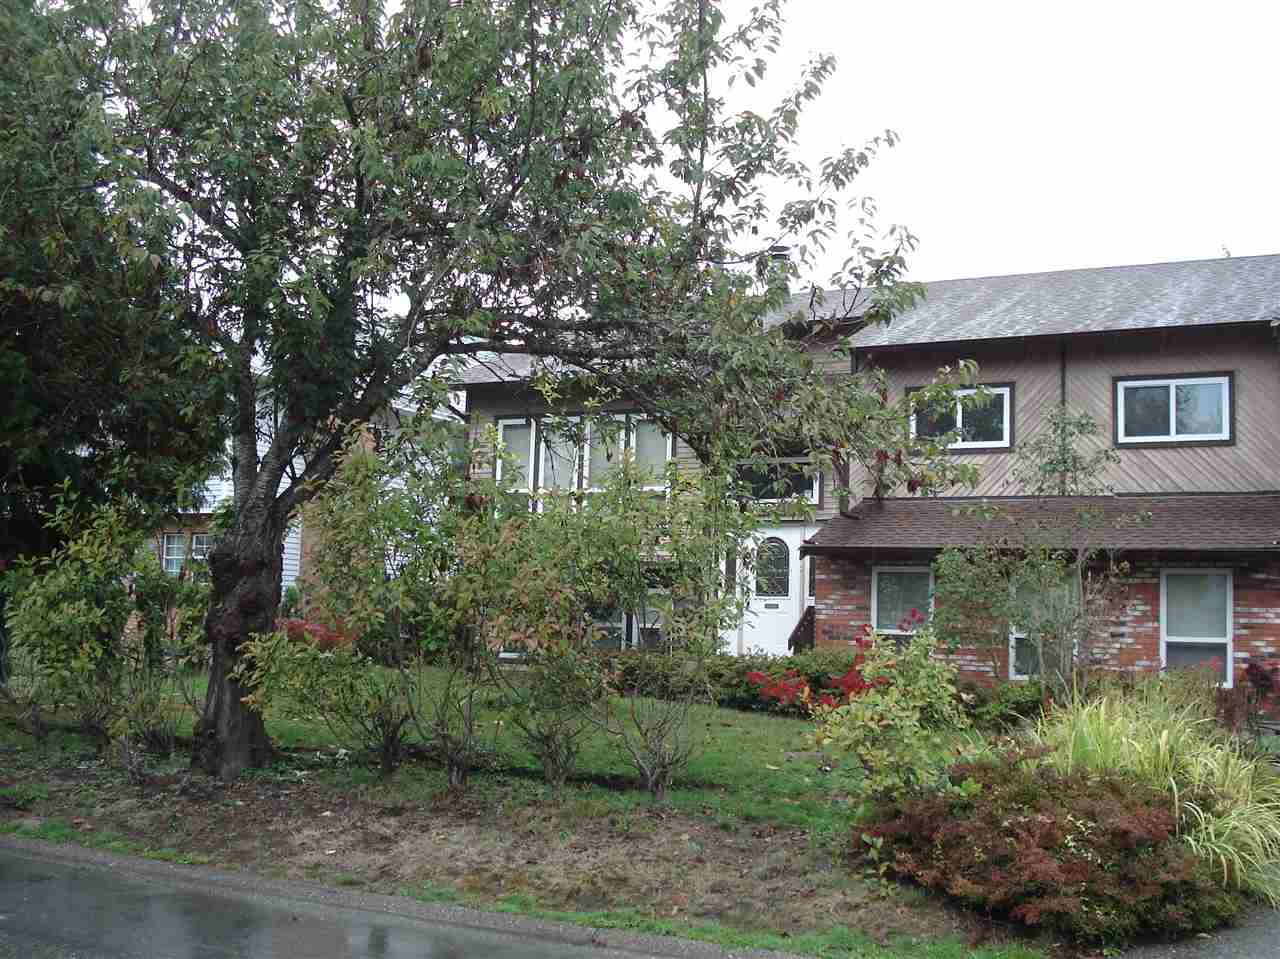 Main Photo: 15017 95A Avenue in Surrey: Fleetwood Tynehead House for sale : MLS®# R2214991